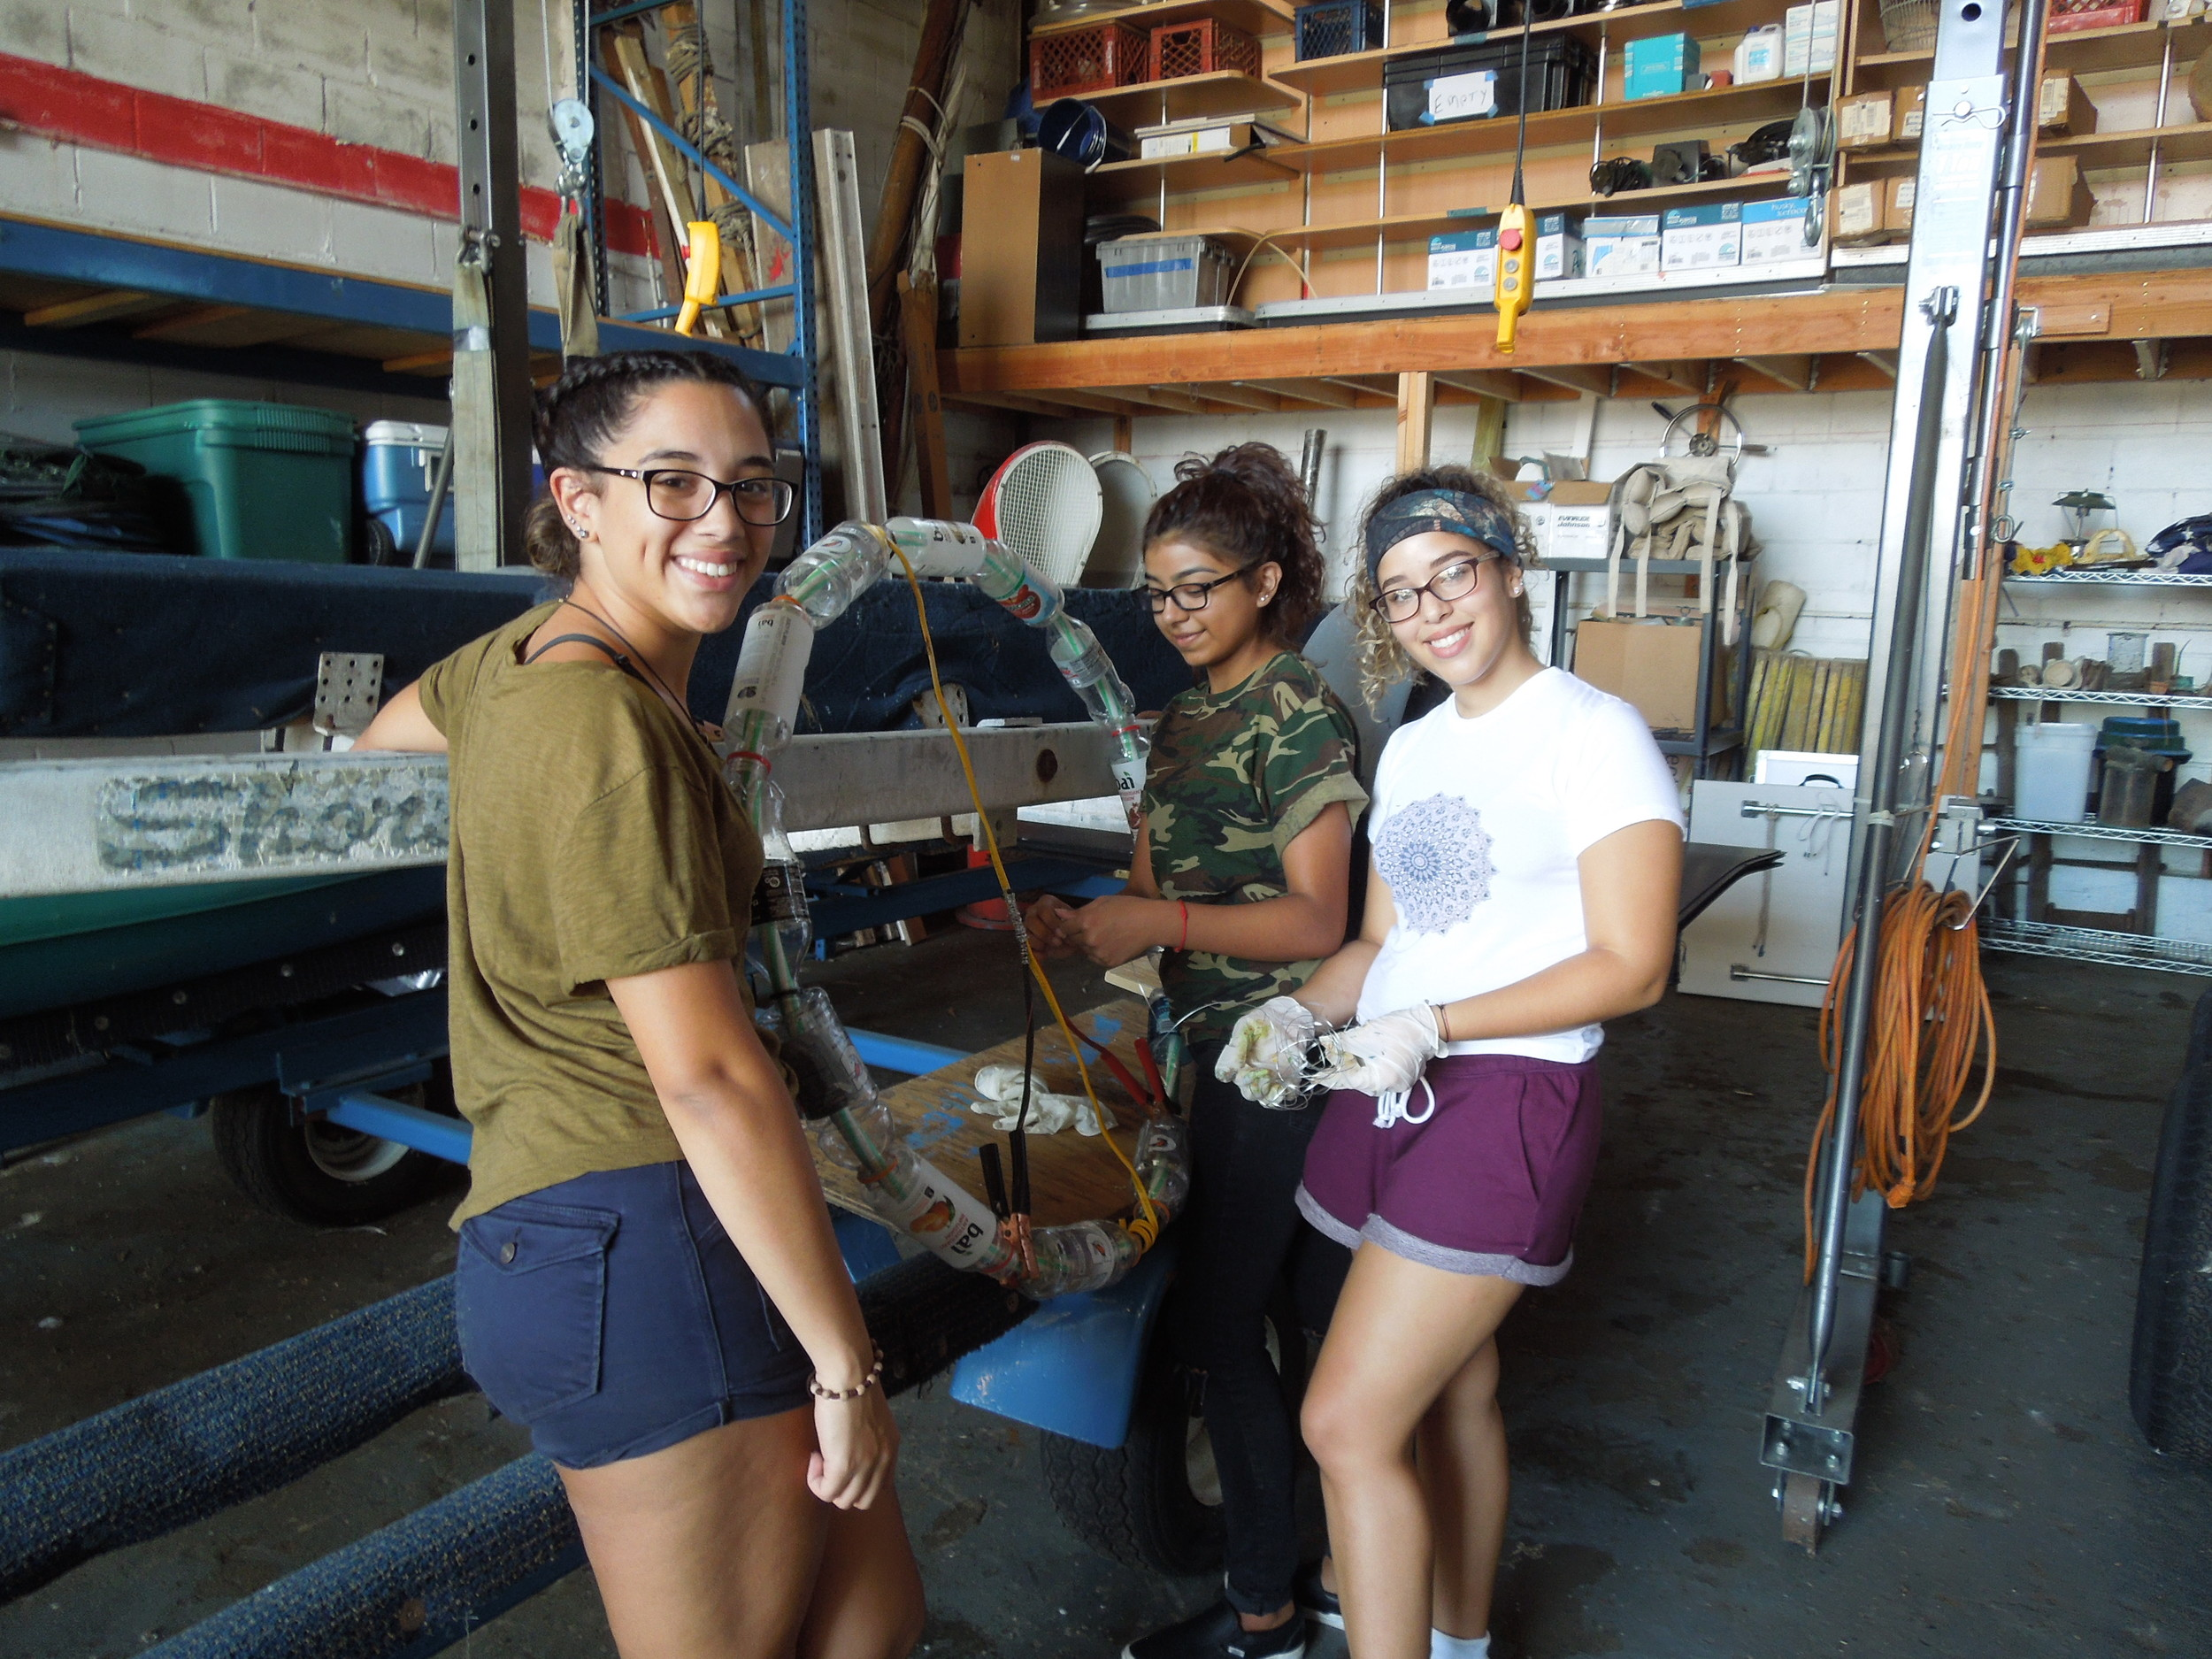 Students work on peace sign. From left Kaitlyn Adames, Jennifer Orantes and Kimberly Adames.